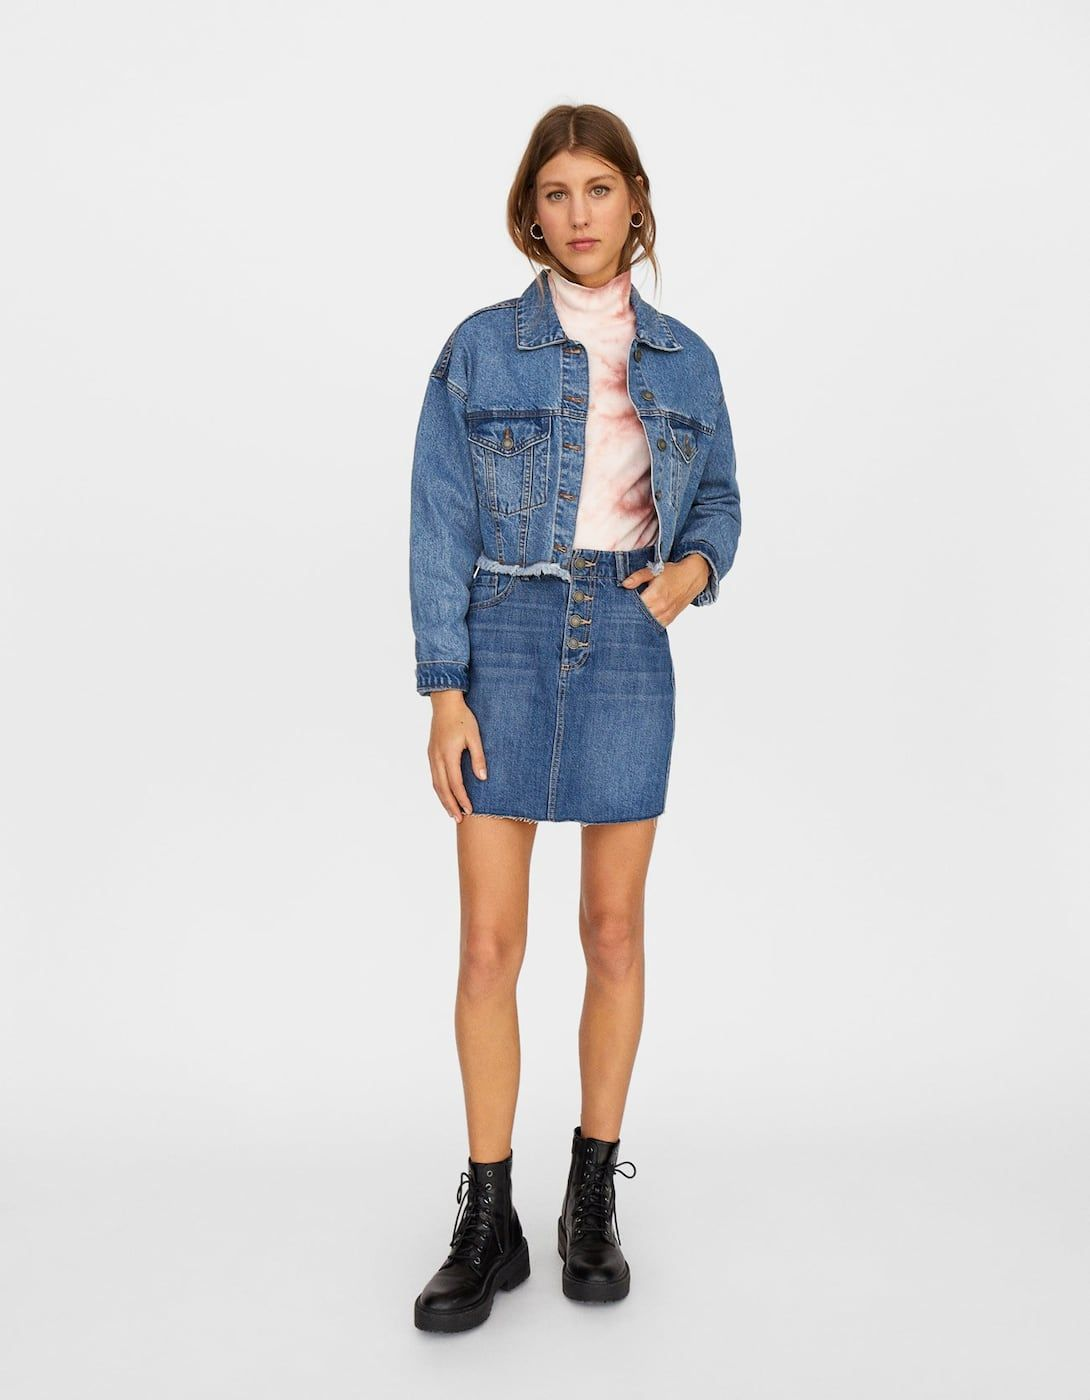 c538468f1b Veste courte en denim basic bas effiloché - Manteaux et vestes |  Stradivarius France